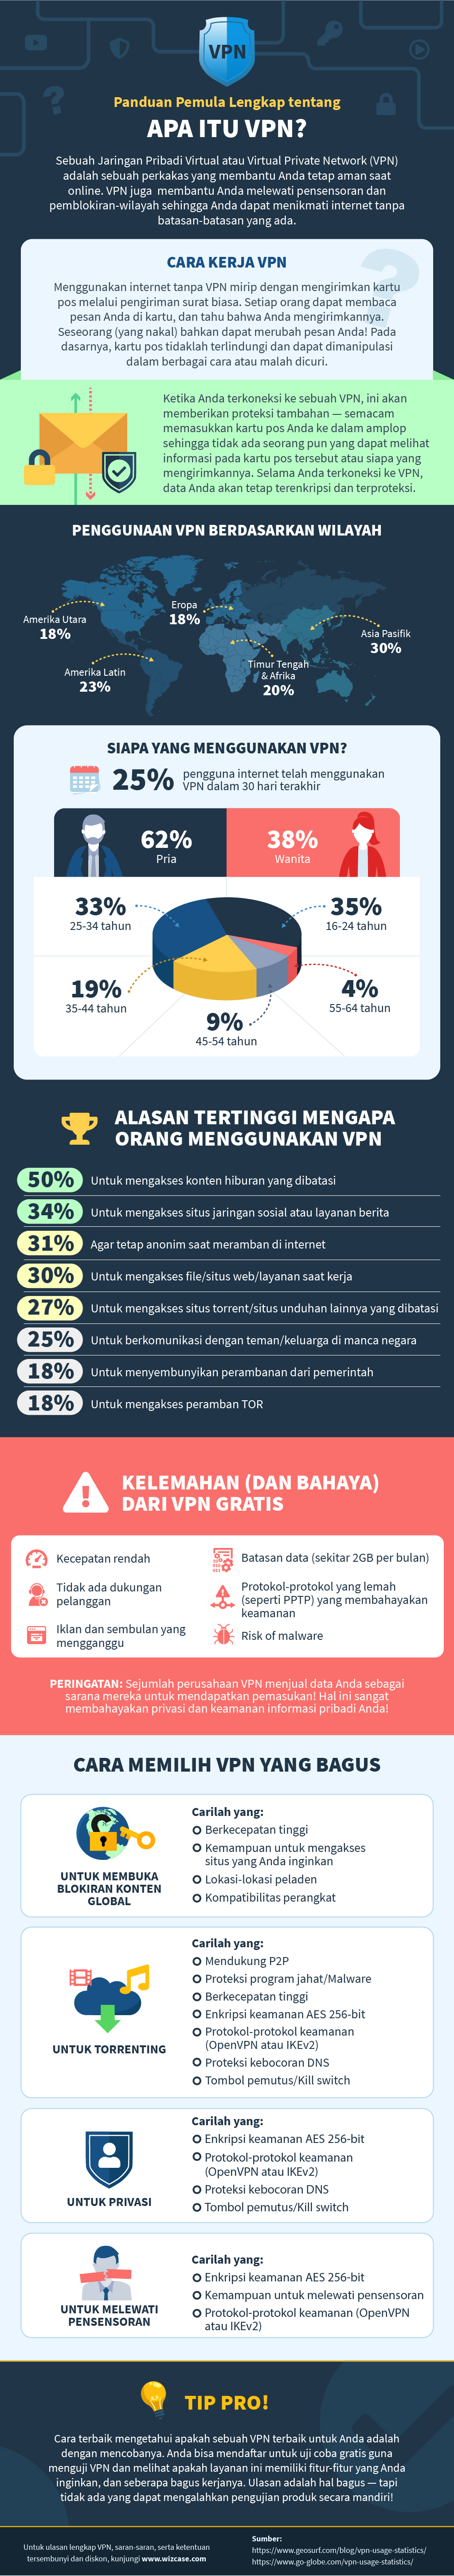 infographic guide to what is a VPN in Indonesian